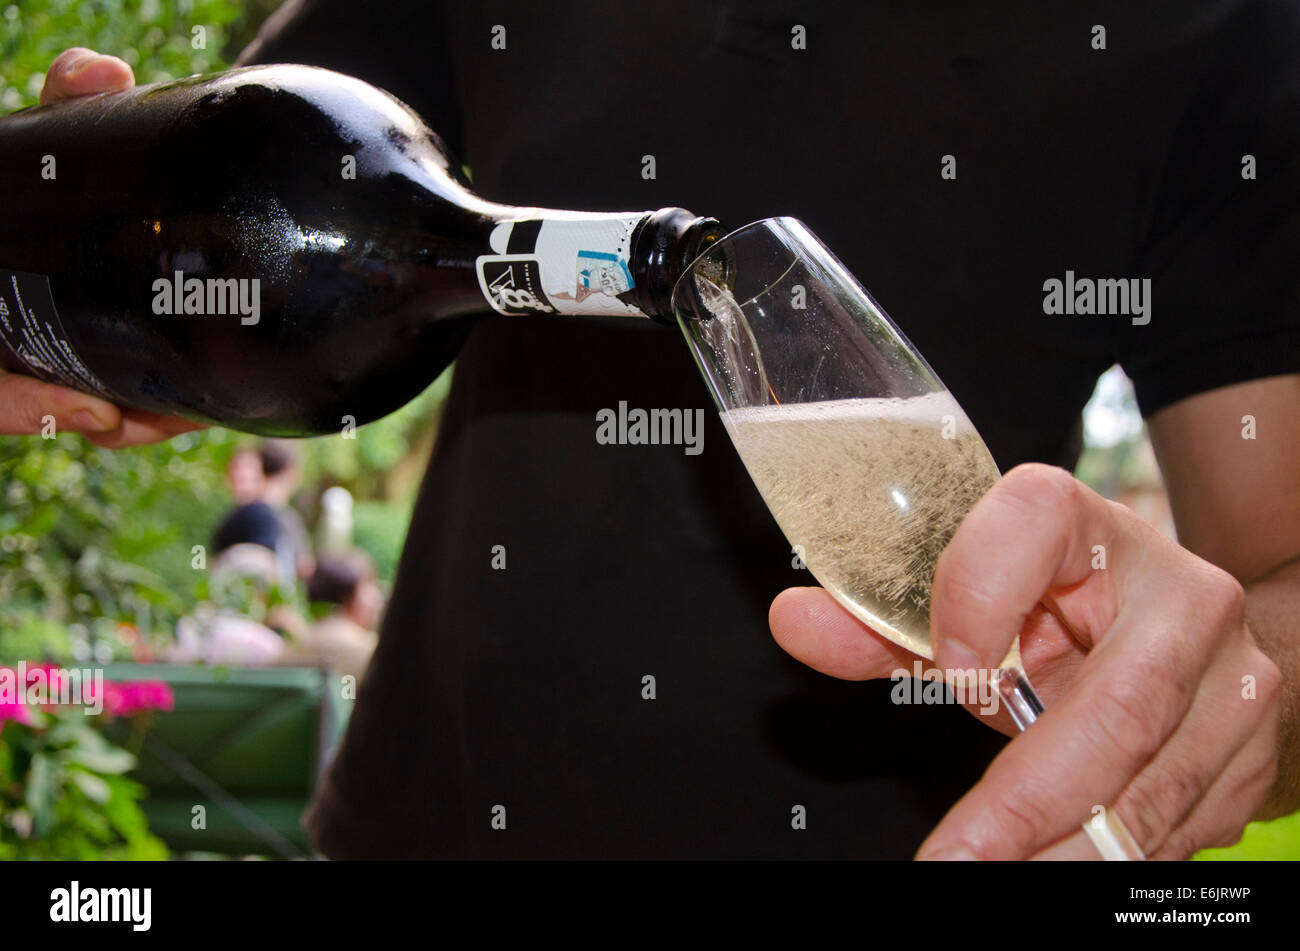 Man serving a Prosecco V8+, an Italian sparkling white wine - Stock Image